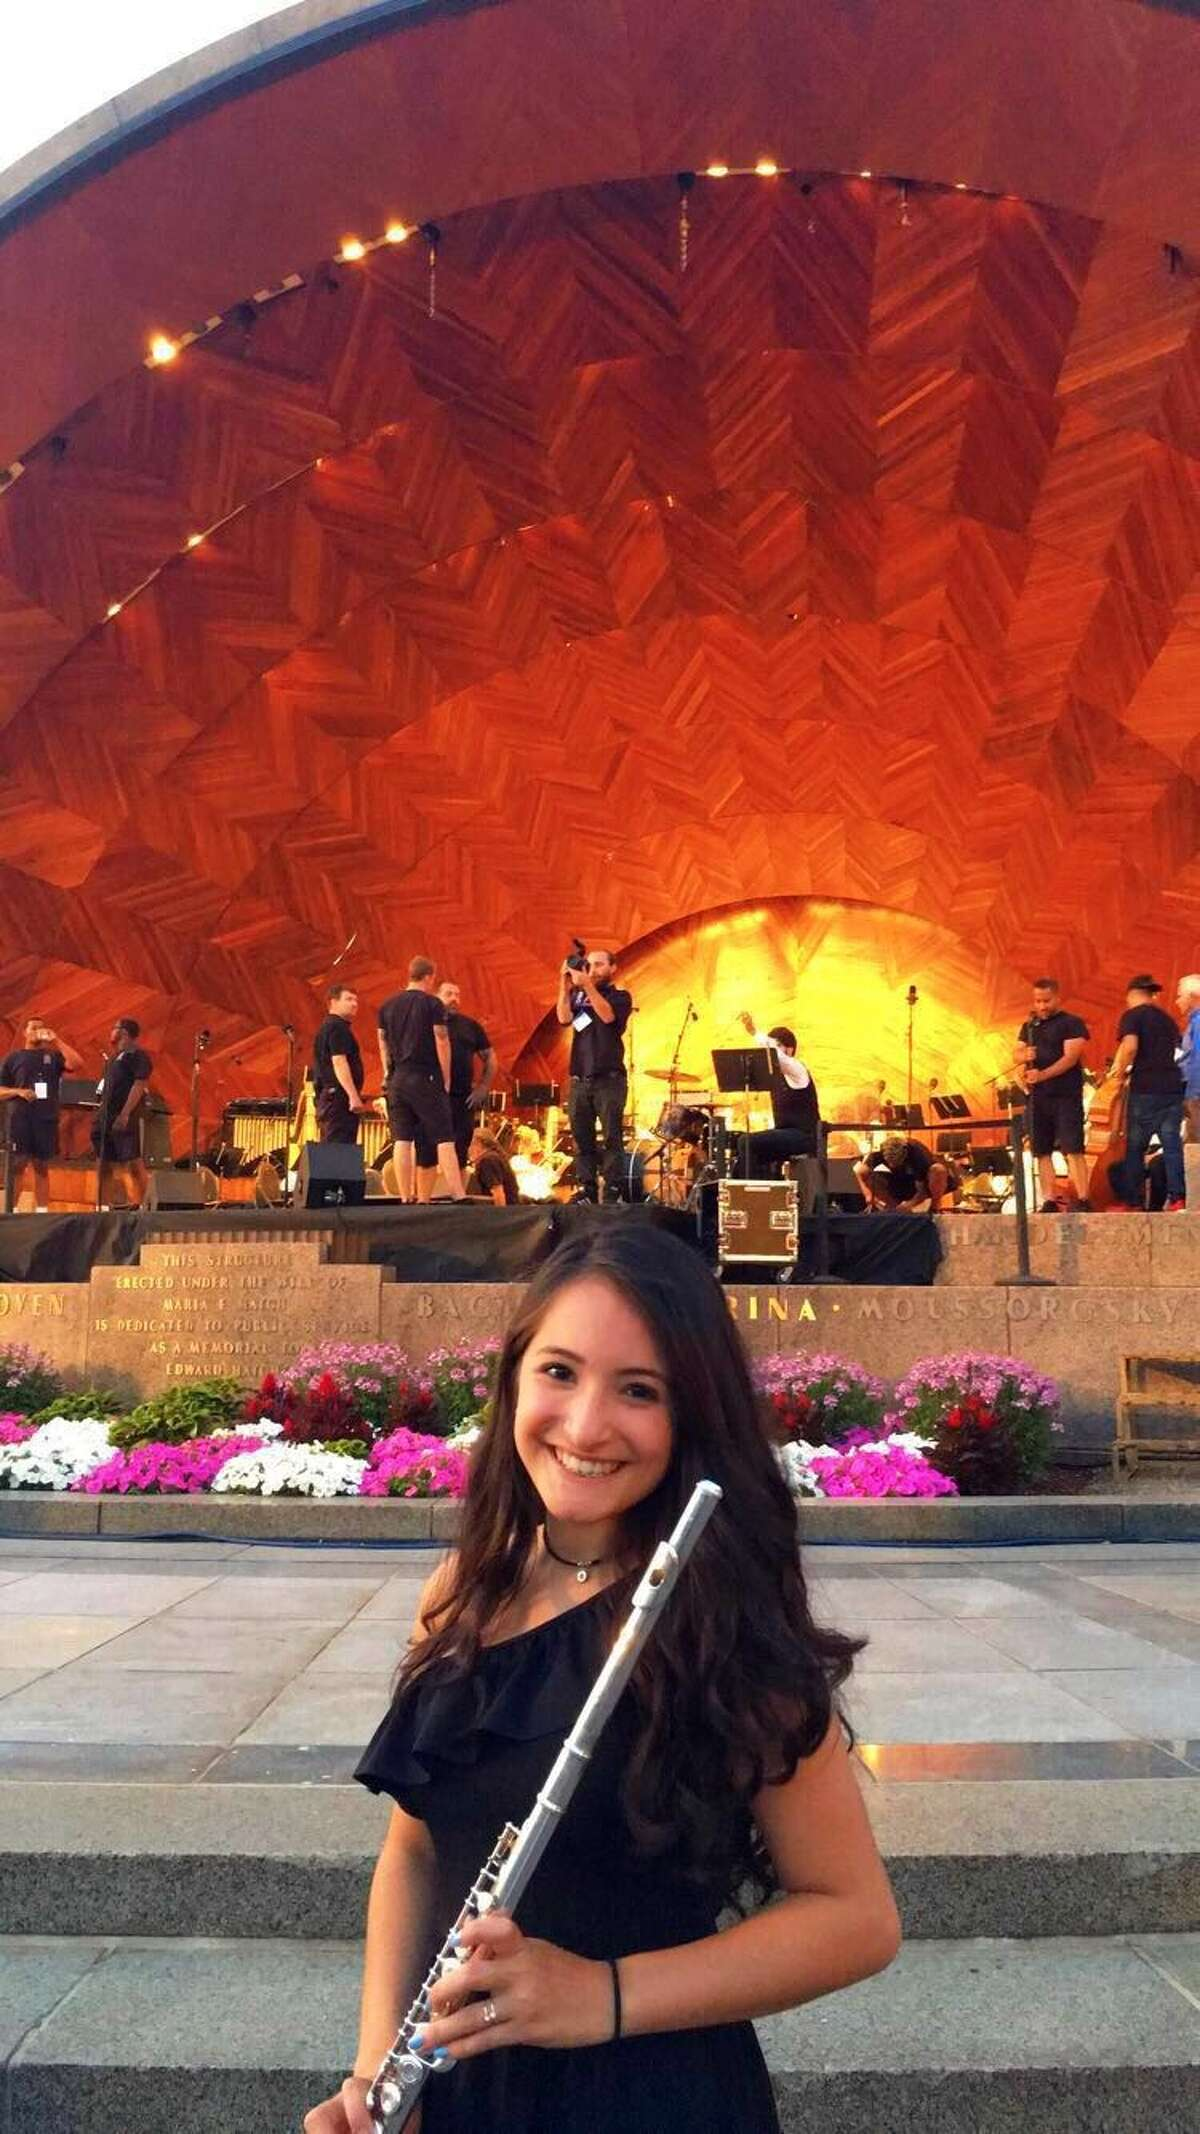 Alexandra Oleda, a sophomore at Atascocita High School, was offered a scholarship for the summer program at the Boston String Academy.